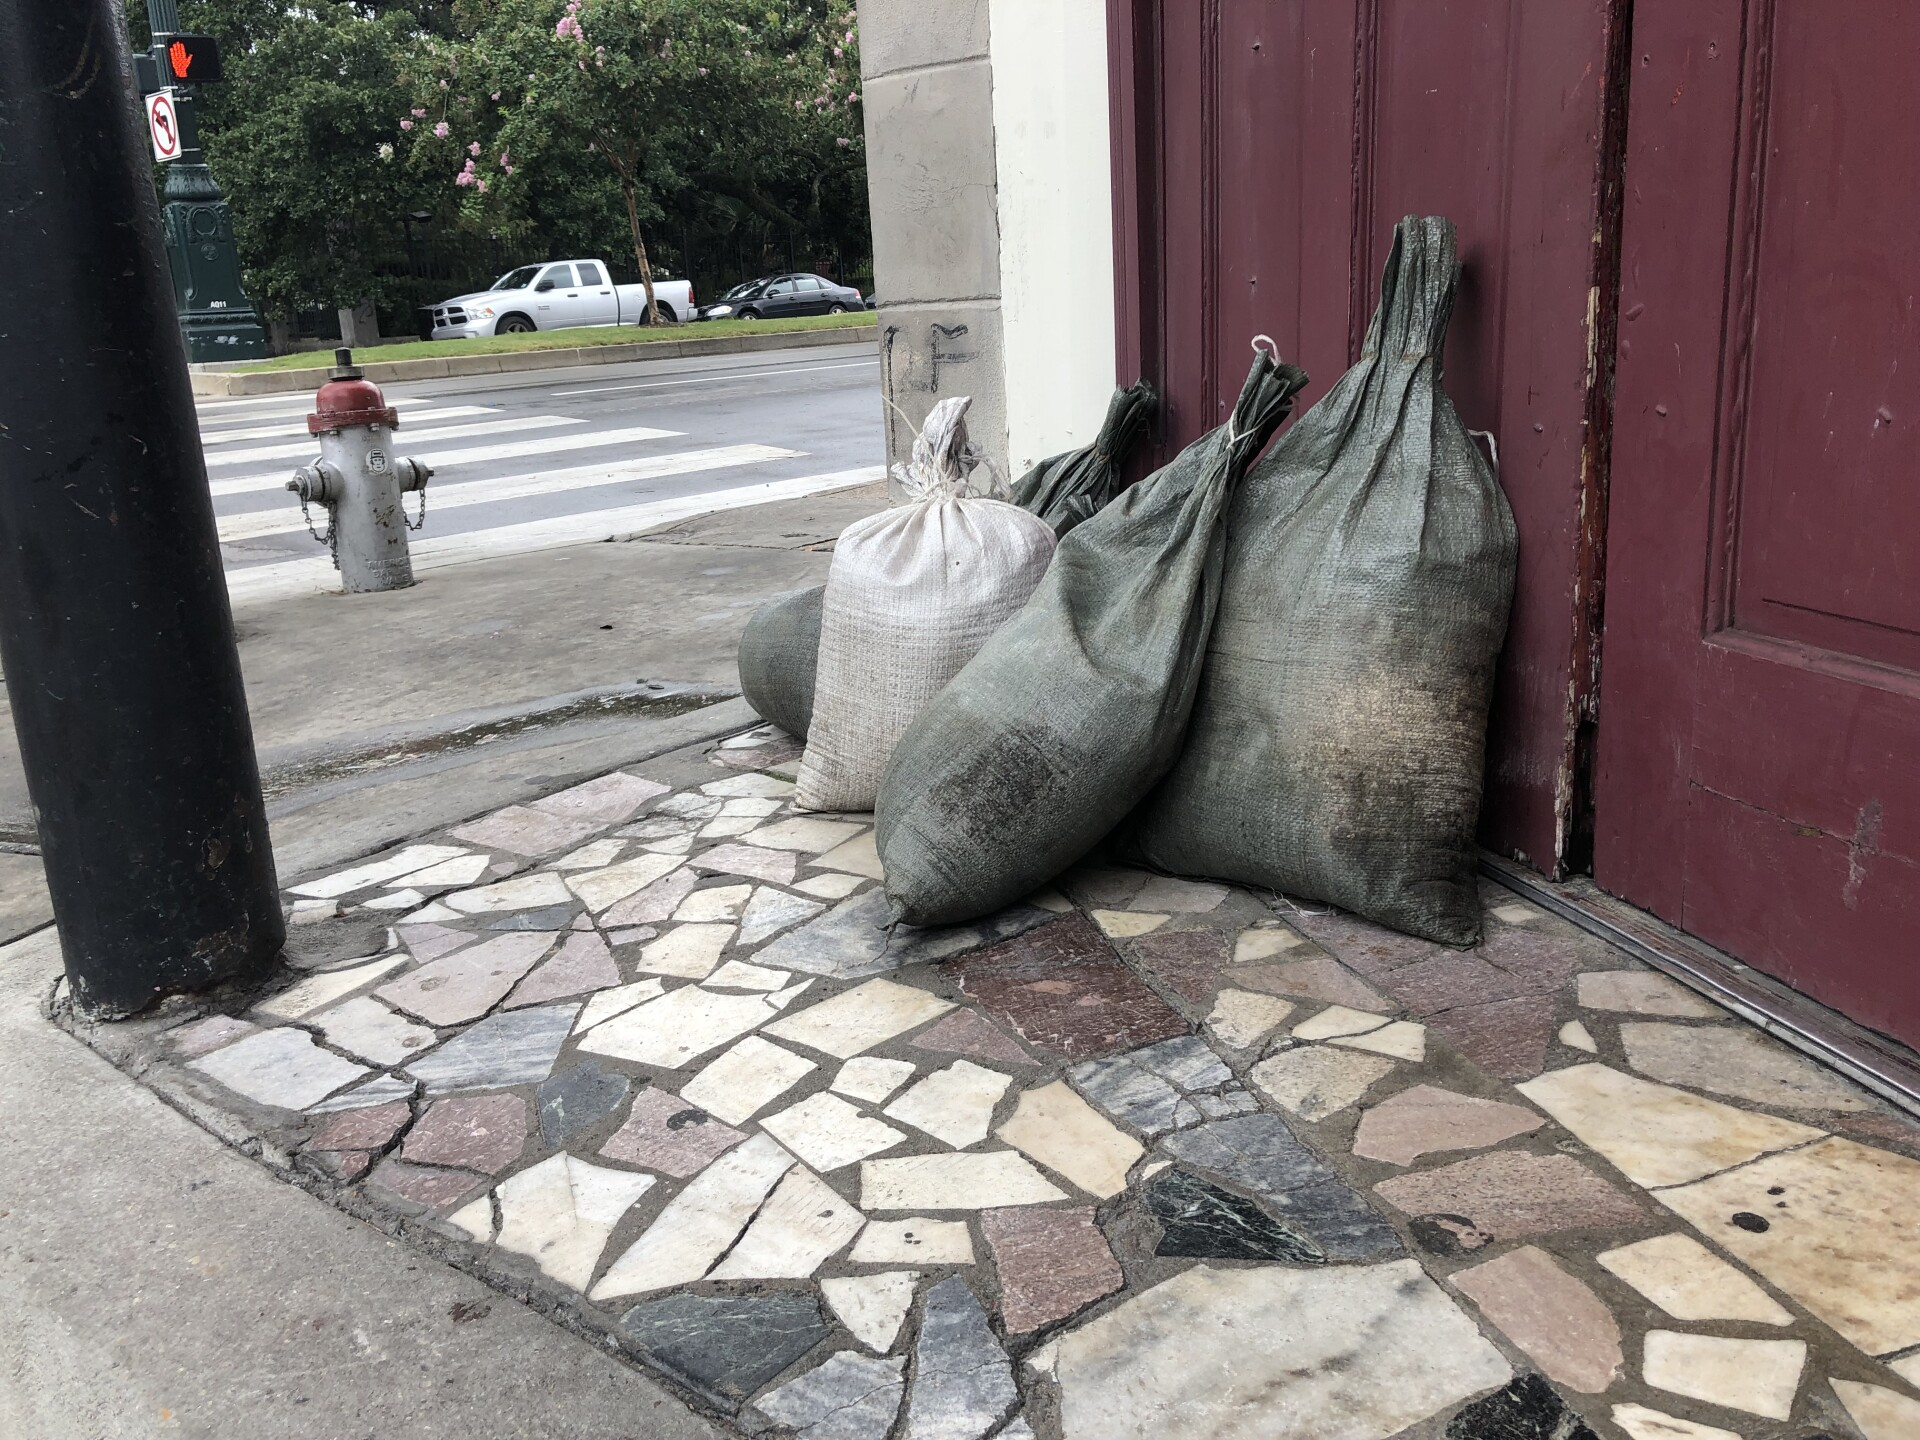 City preparing sandbags for Marco-just in case